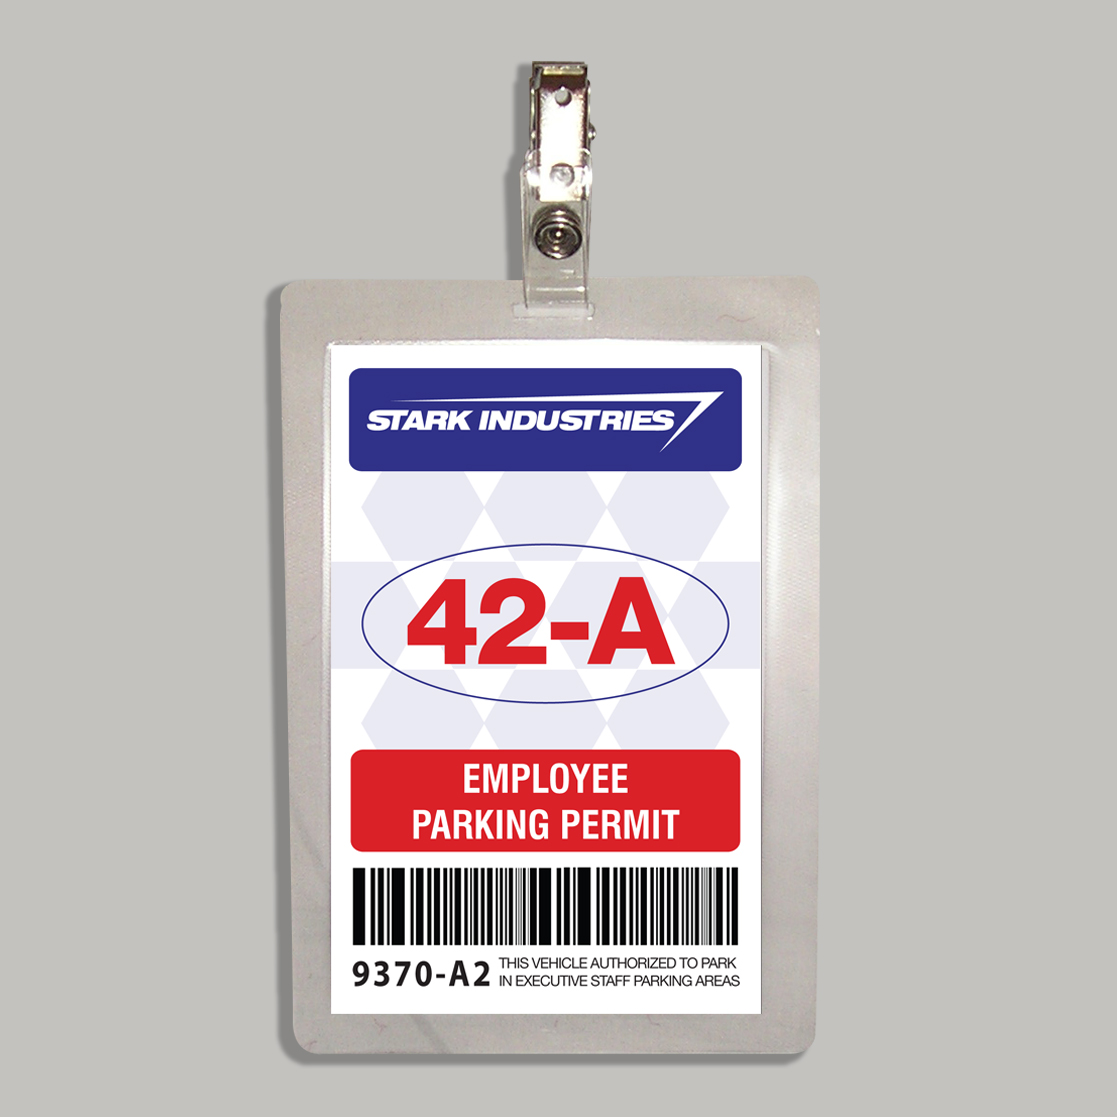 Stark Industries Parking Permit Badge From The Film Iron Man